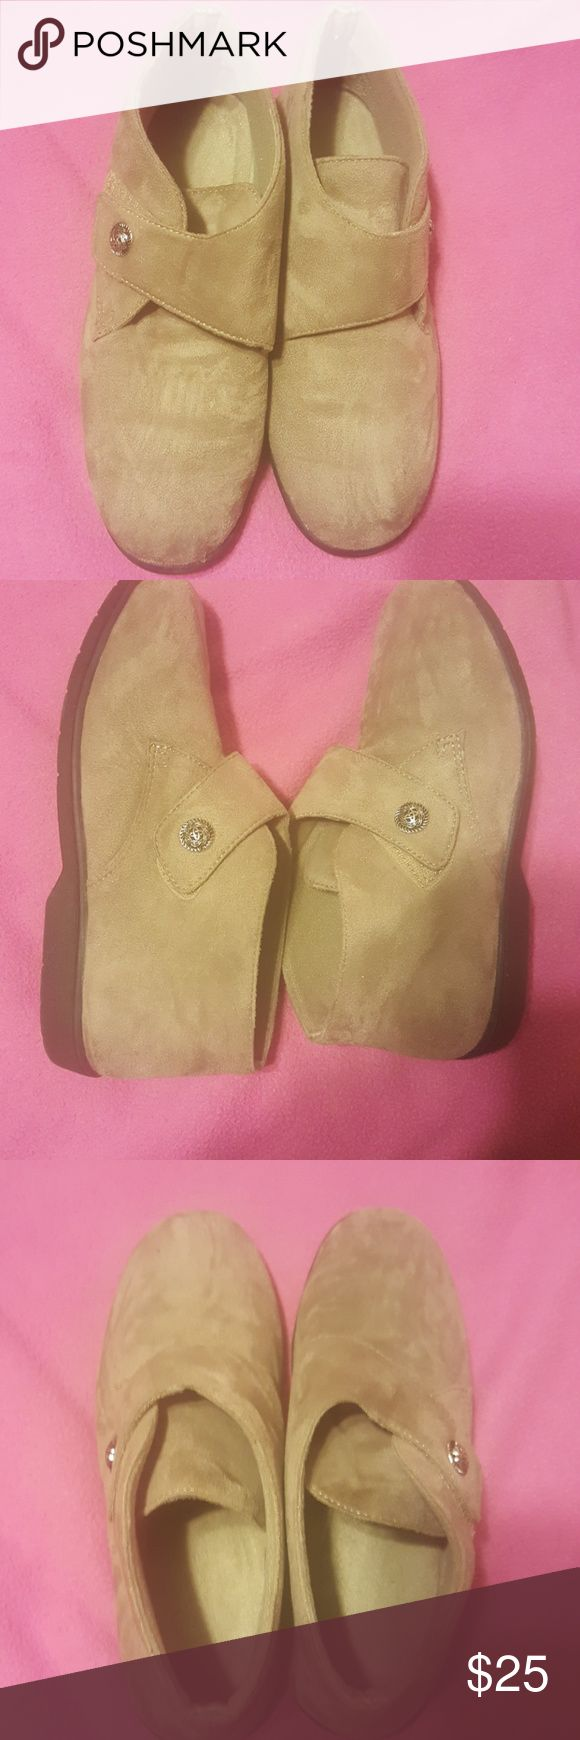 Size 10 Propet Flat Heel Boots I have only worn these once. They are comfortable mini suede boots. Make me an offer or add it to a bundle for 15% off. Propet Shoes Ankle Boots & Booties